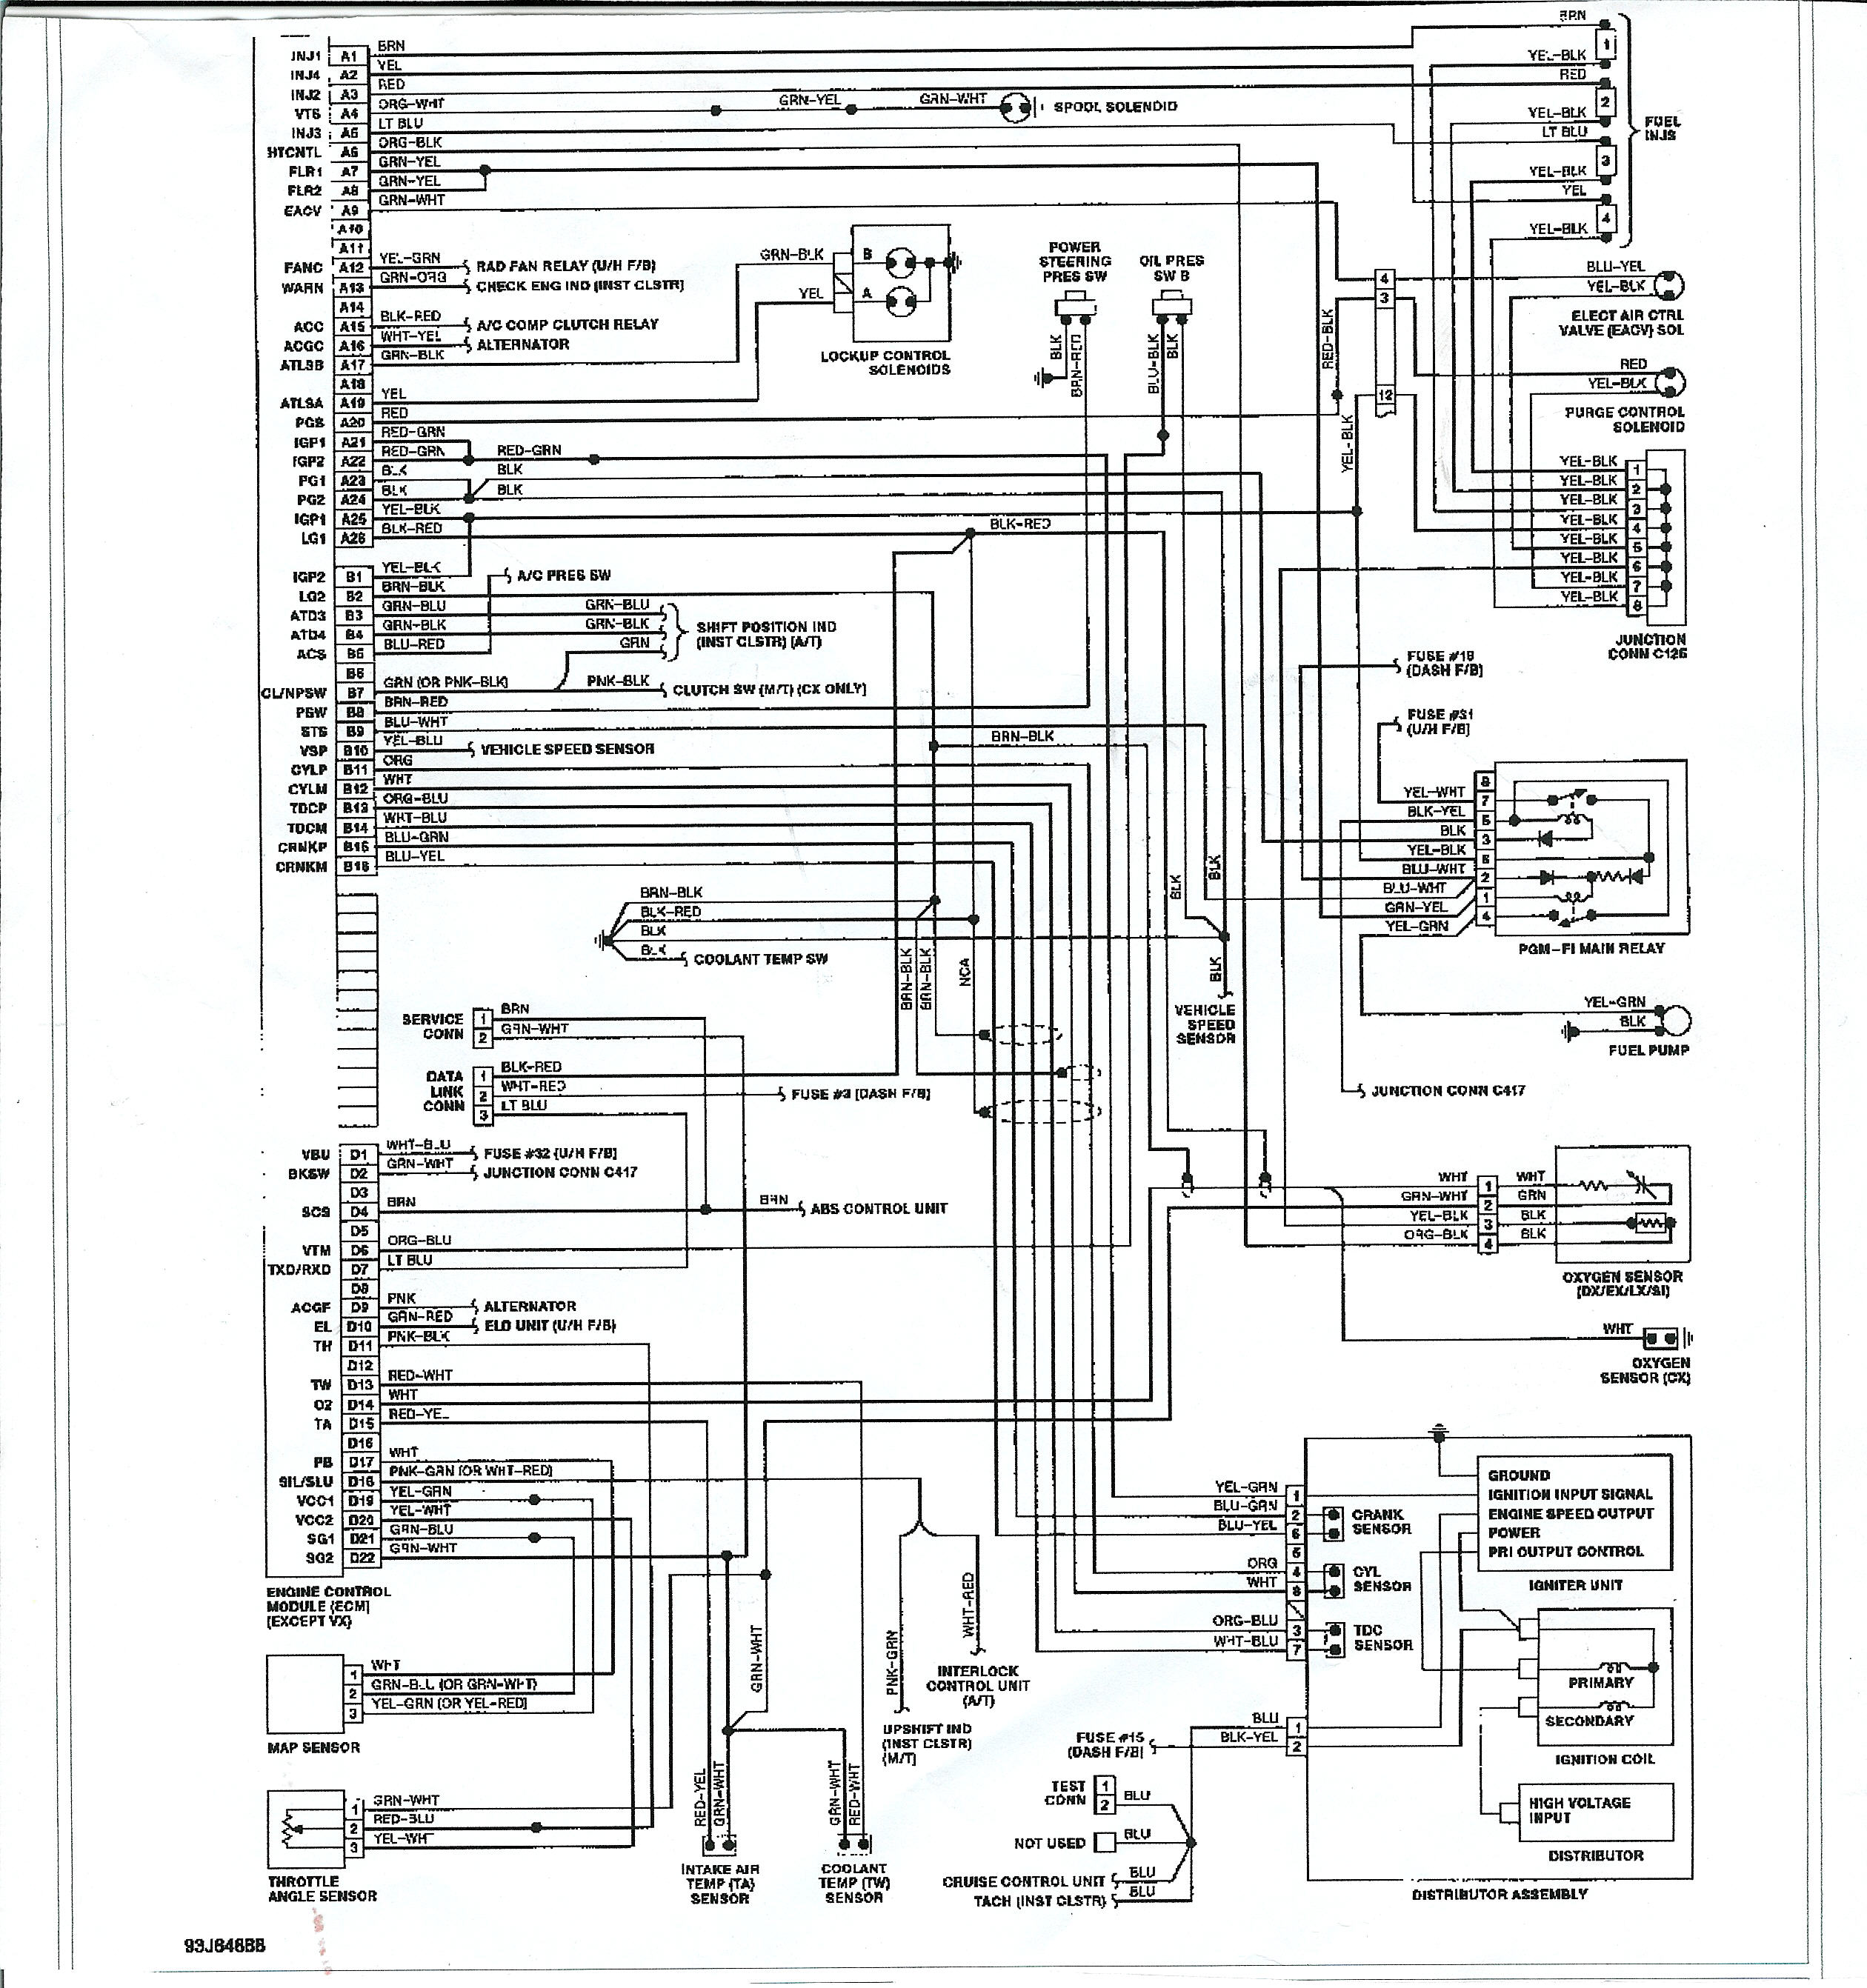 1997 acura integra stereo wiring diagram jet engine parts 2000 honda civic schematics free